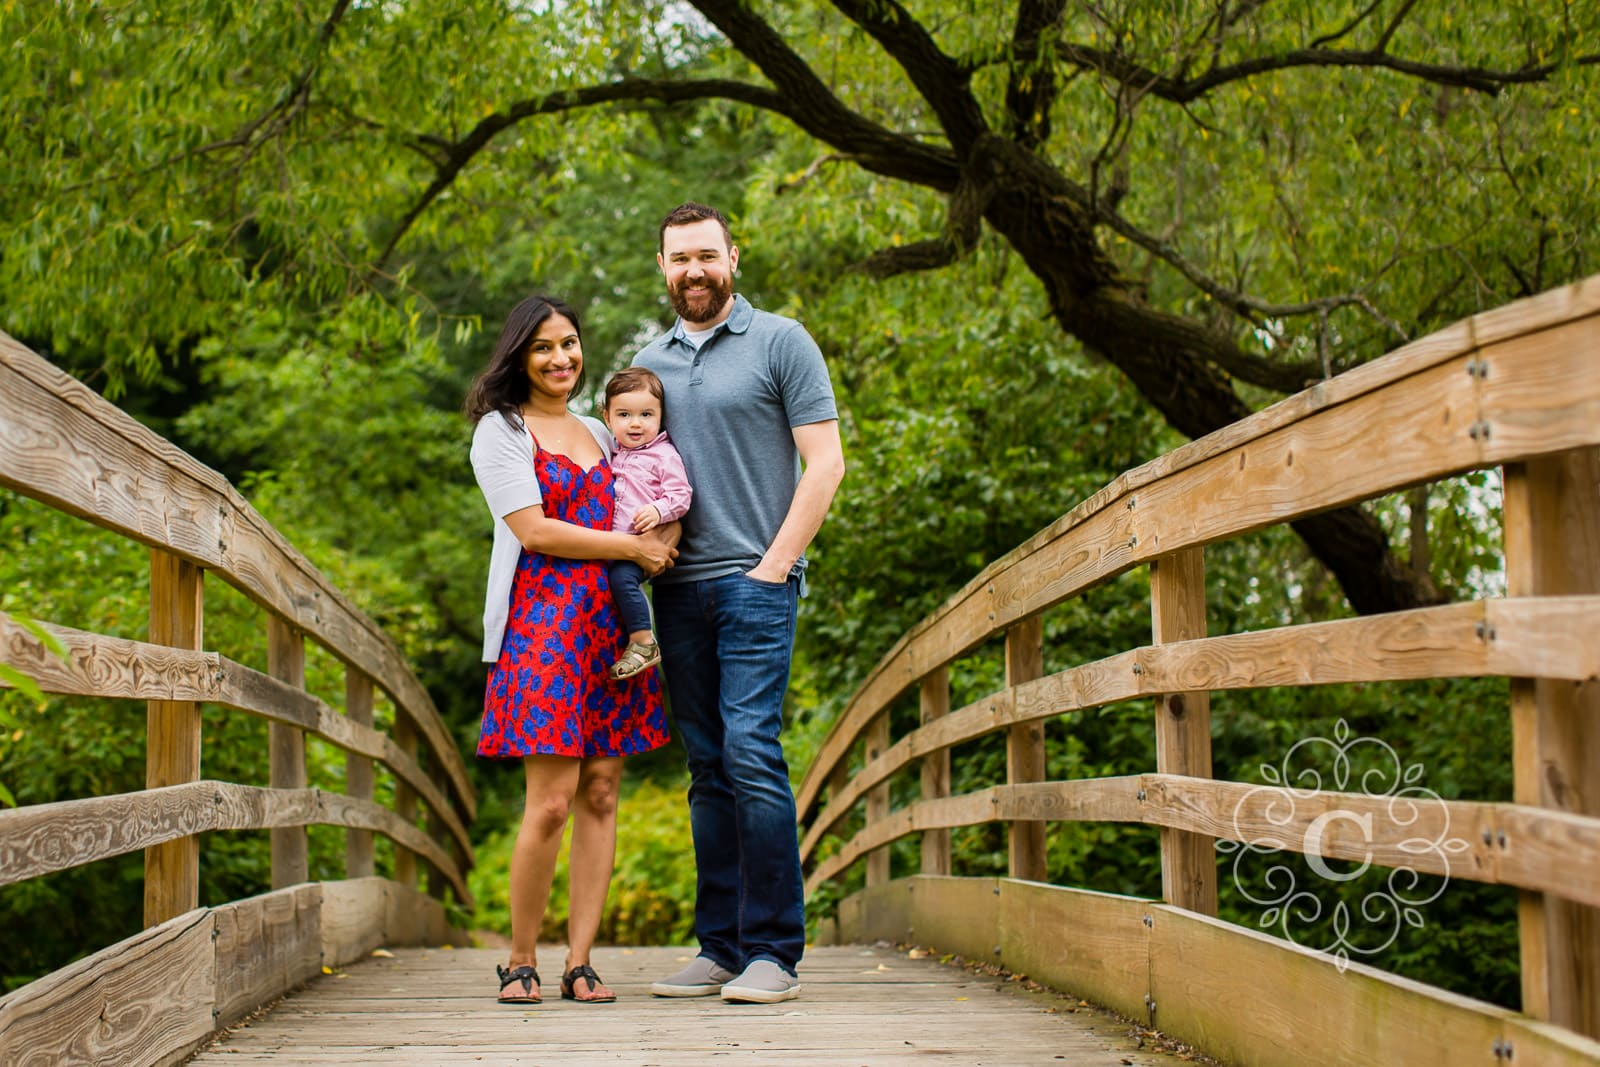 Minnesota Landscape Arboretum Family Photography